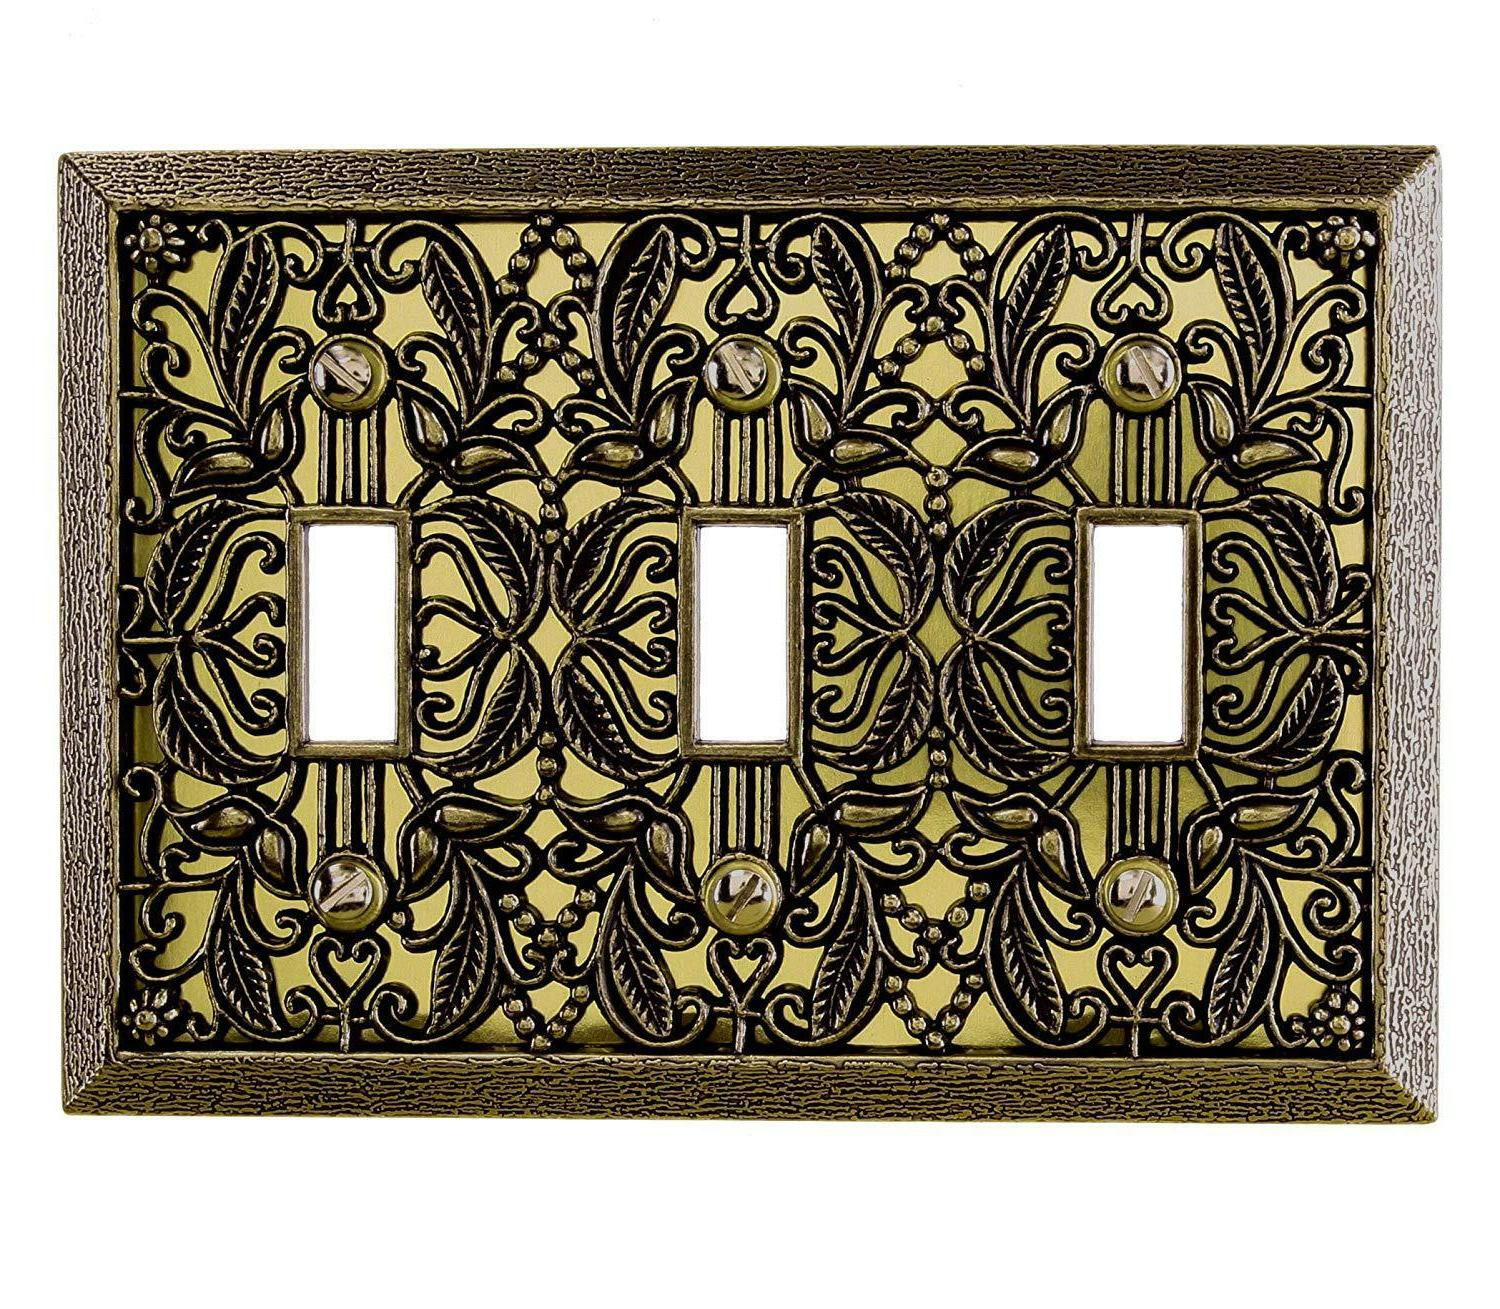 Wall Switch Cover Filigree Antique Toggle Rocker